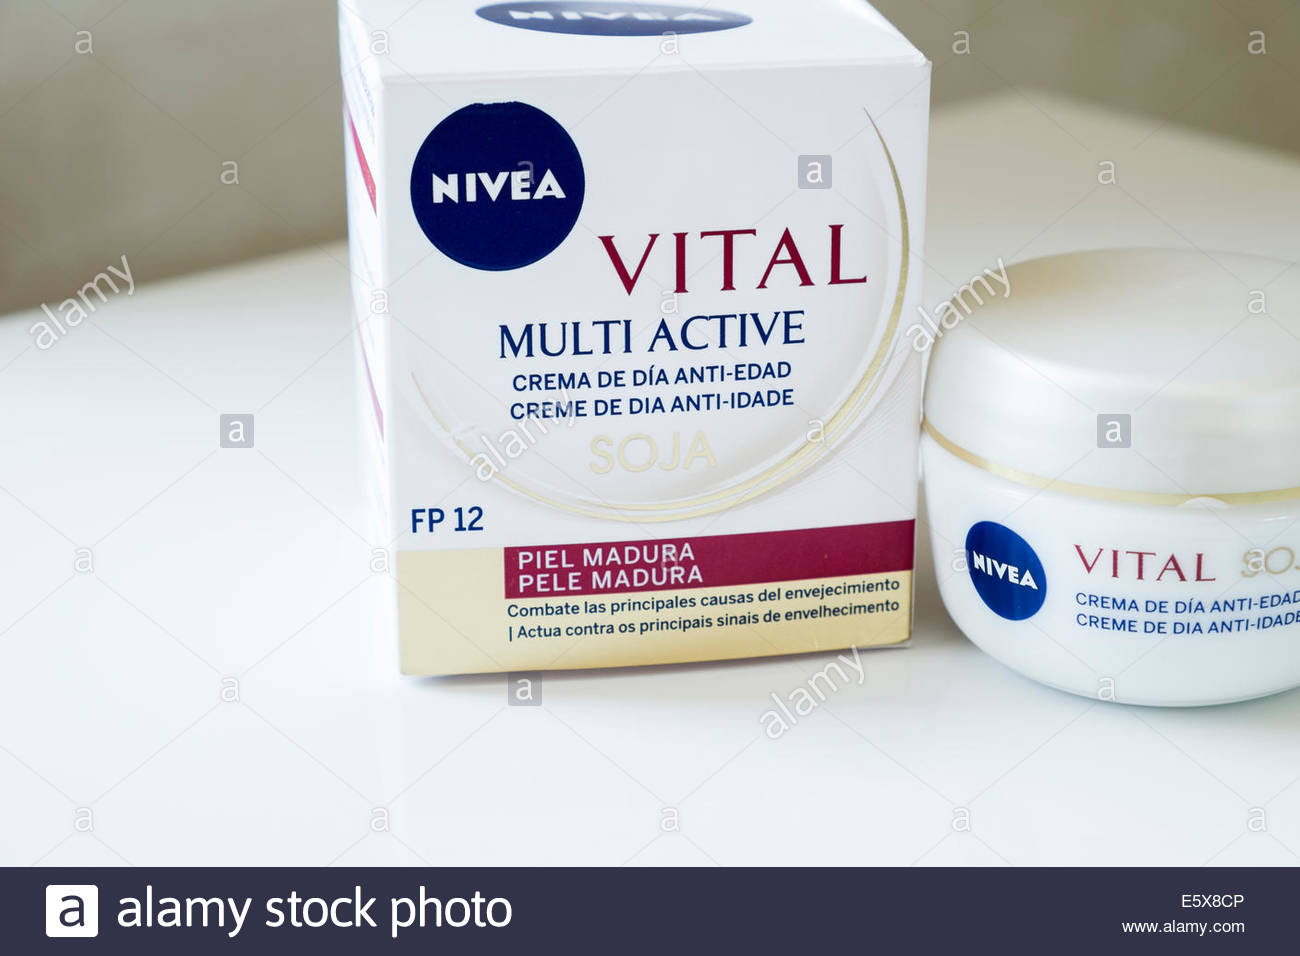 Nivea Vital soja moisturising day cream as sold in Portugal with box - Stock Image